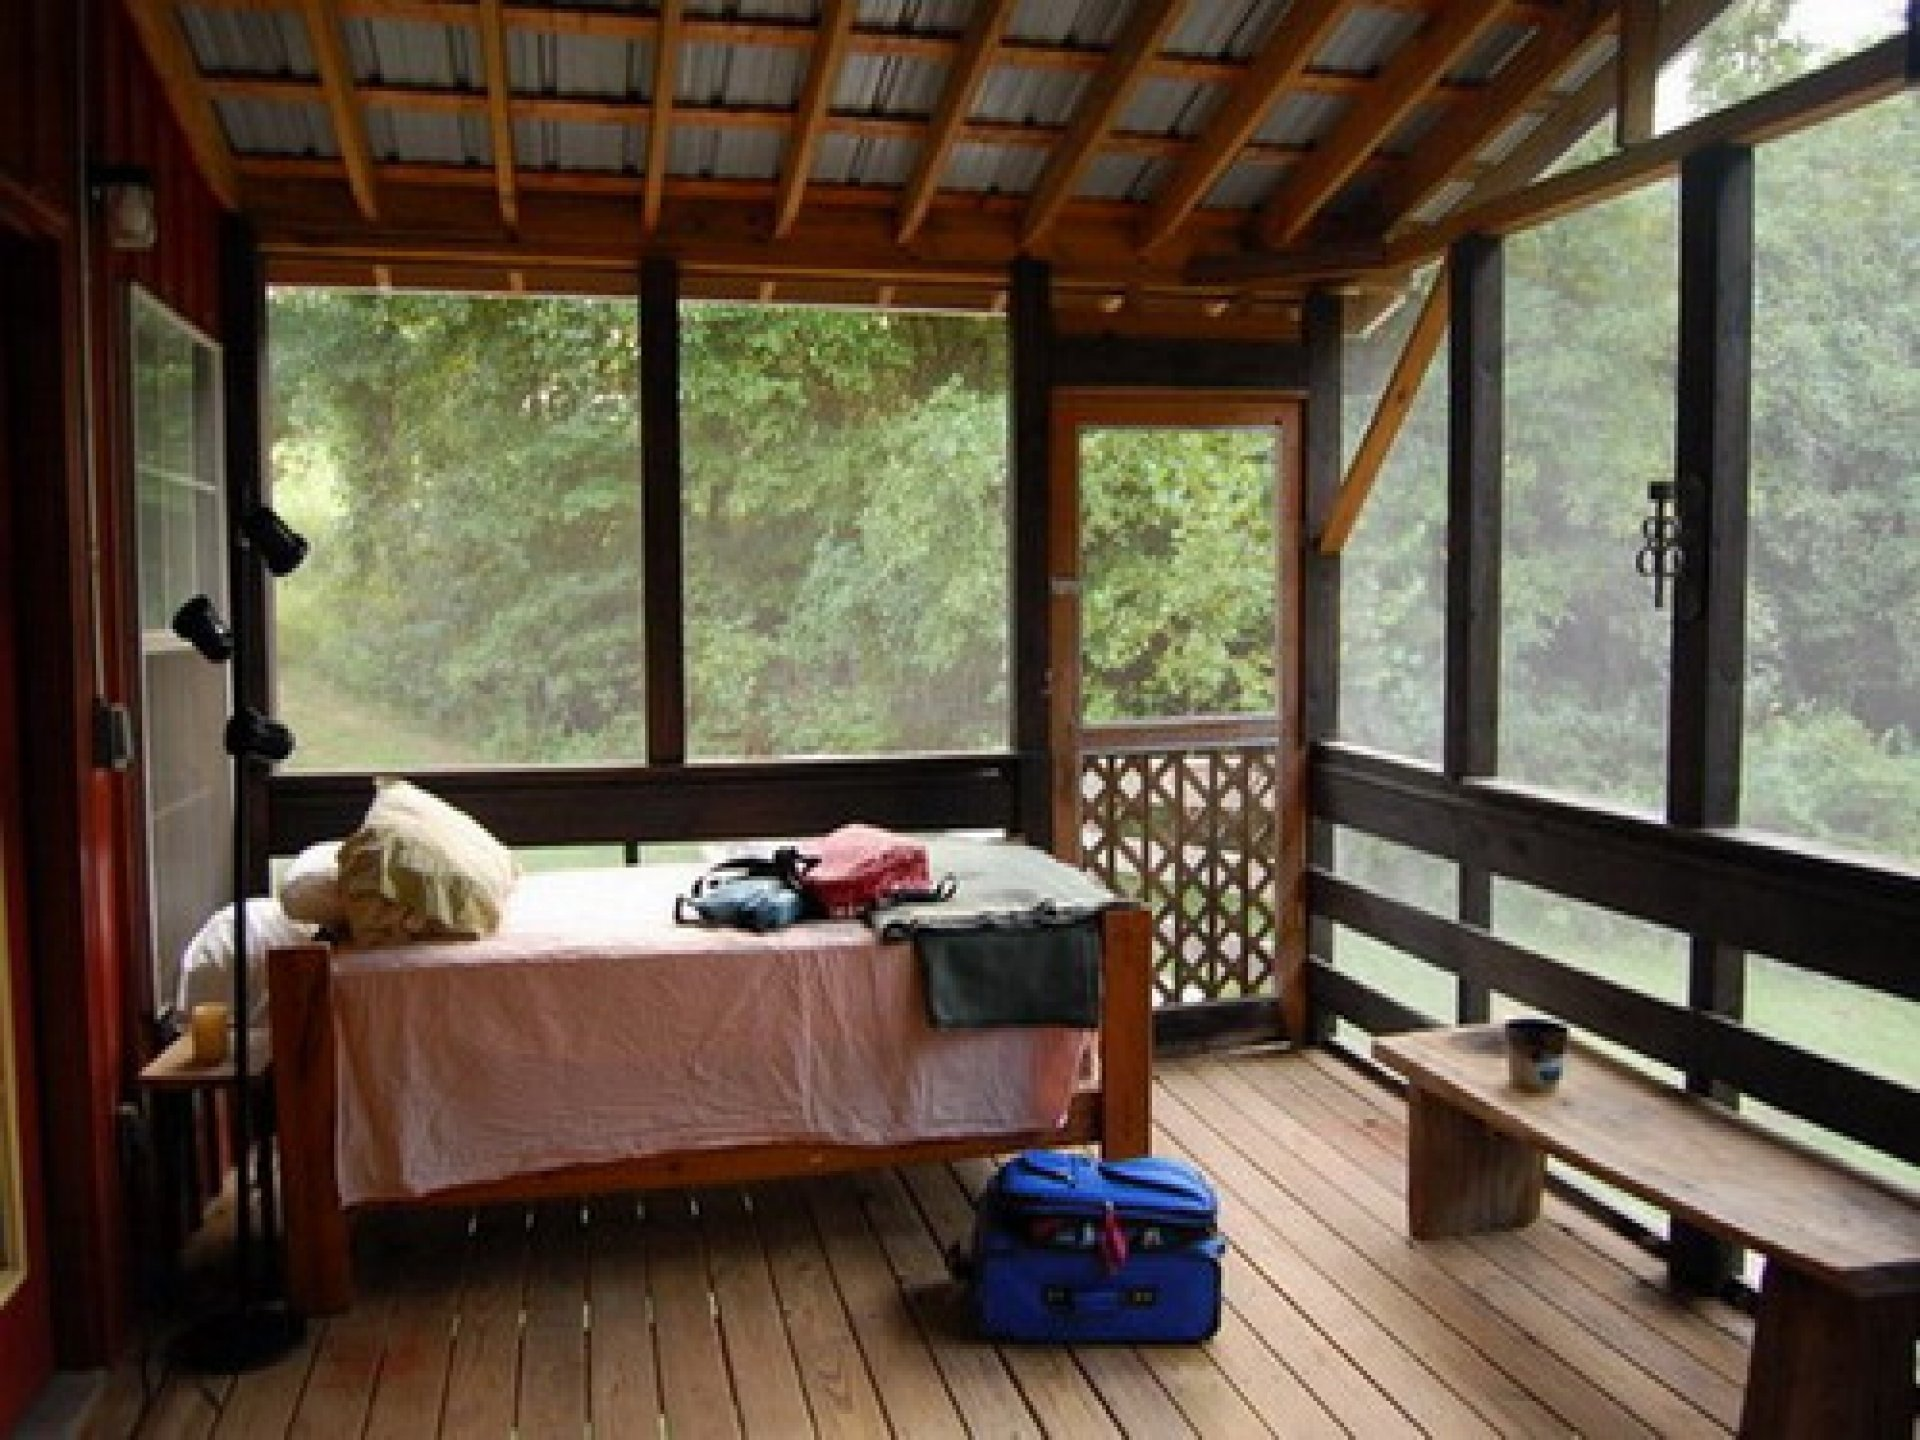 10 Most Recommended Screened In Porch Design Ideas amazing interior sleeping bed couch on wooden floors as well as wood 2021